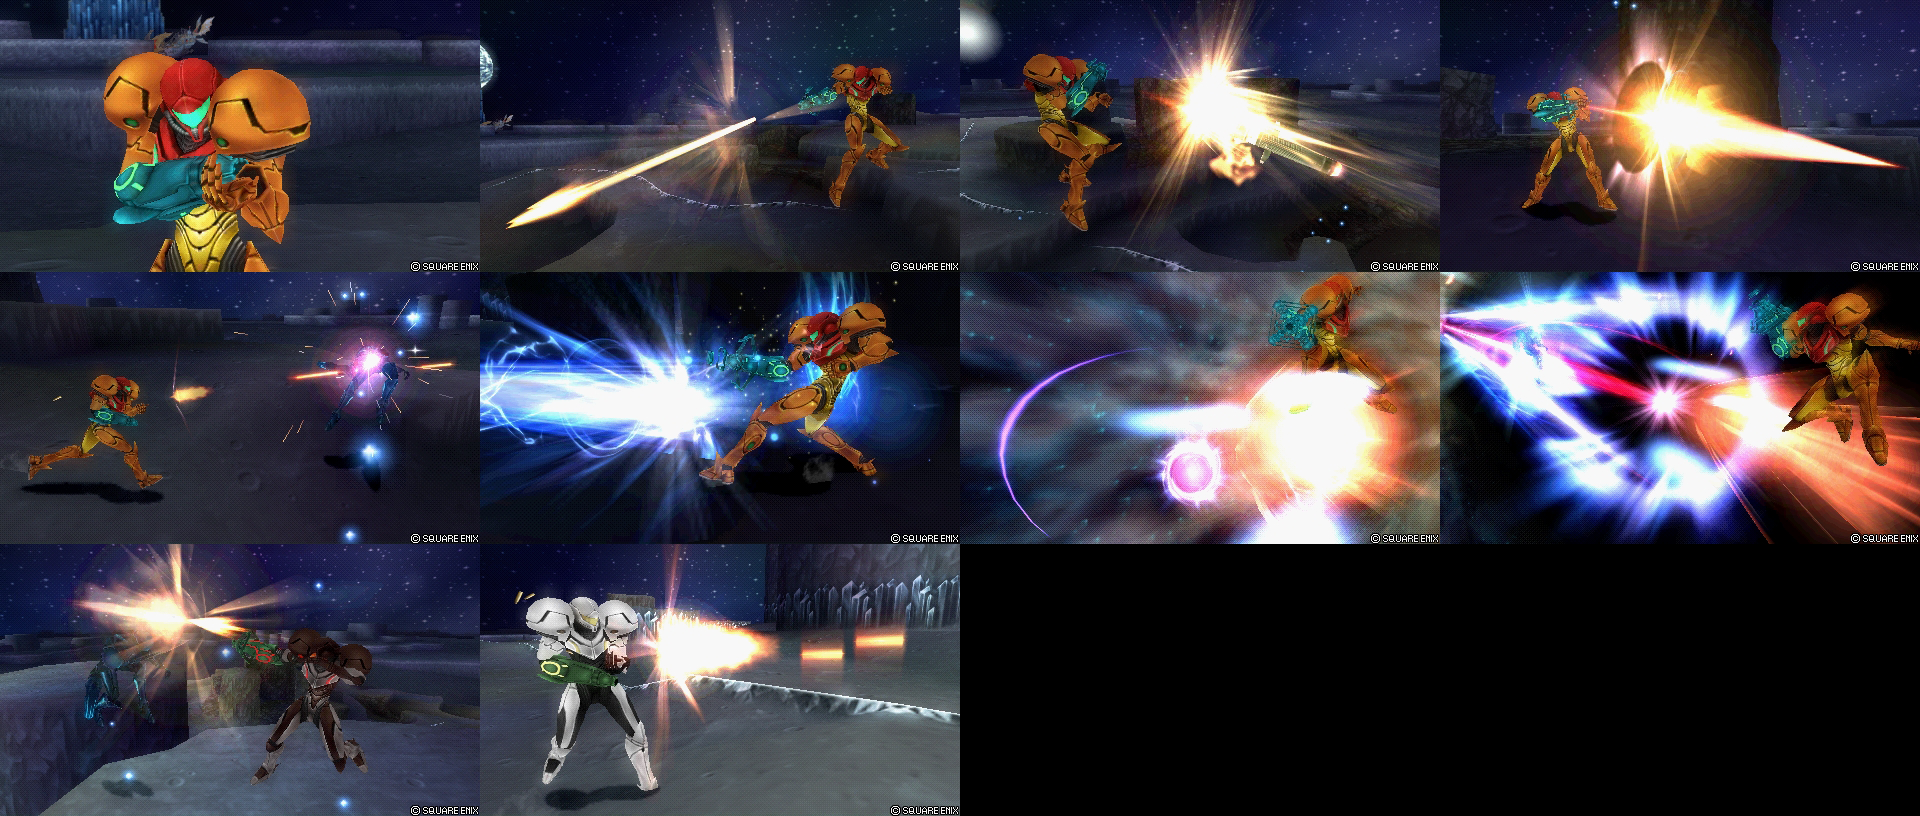 dissidia_012_mods__samus__smash_3ds__by_